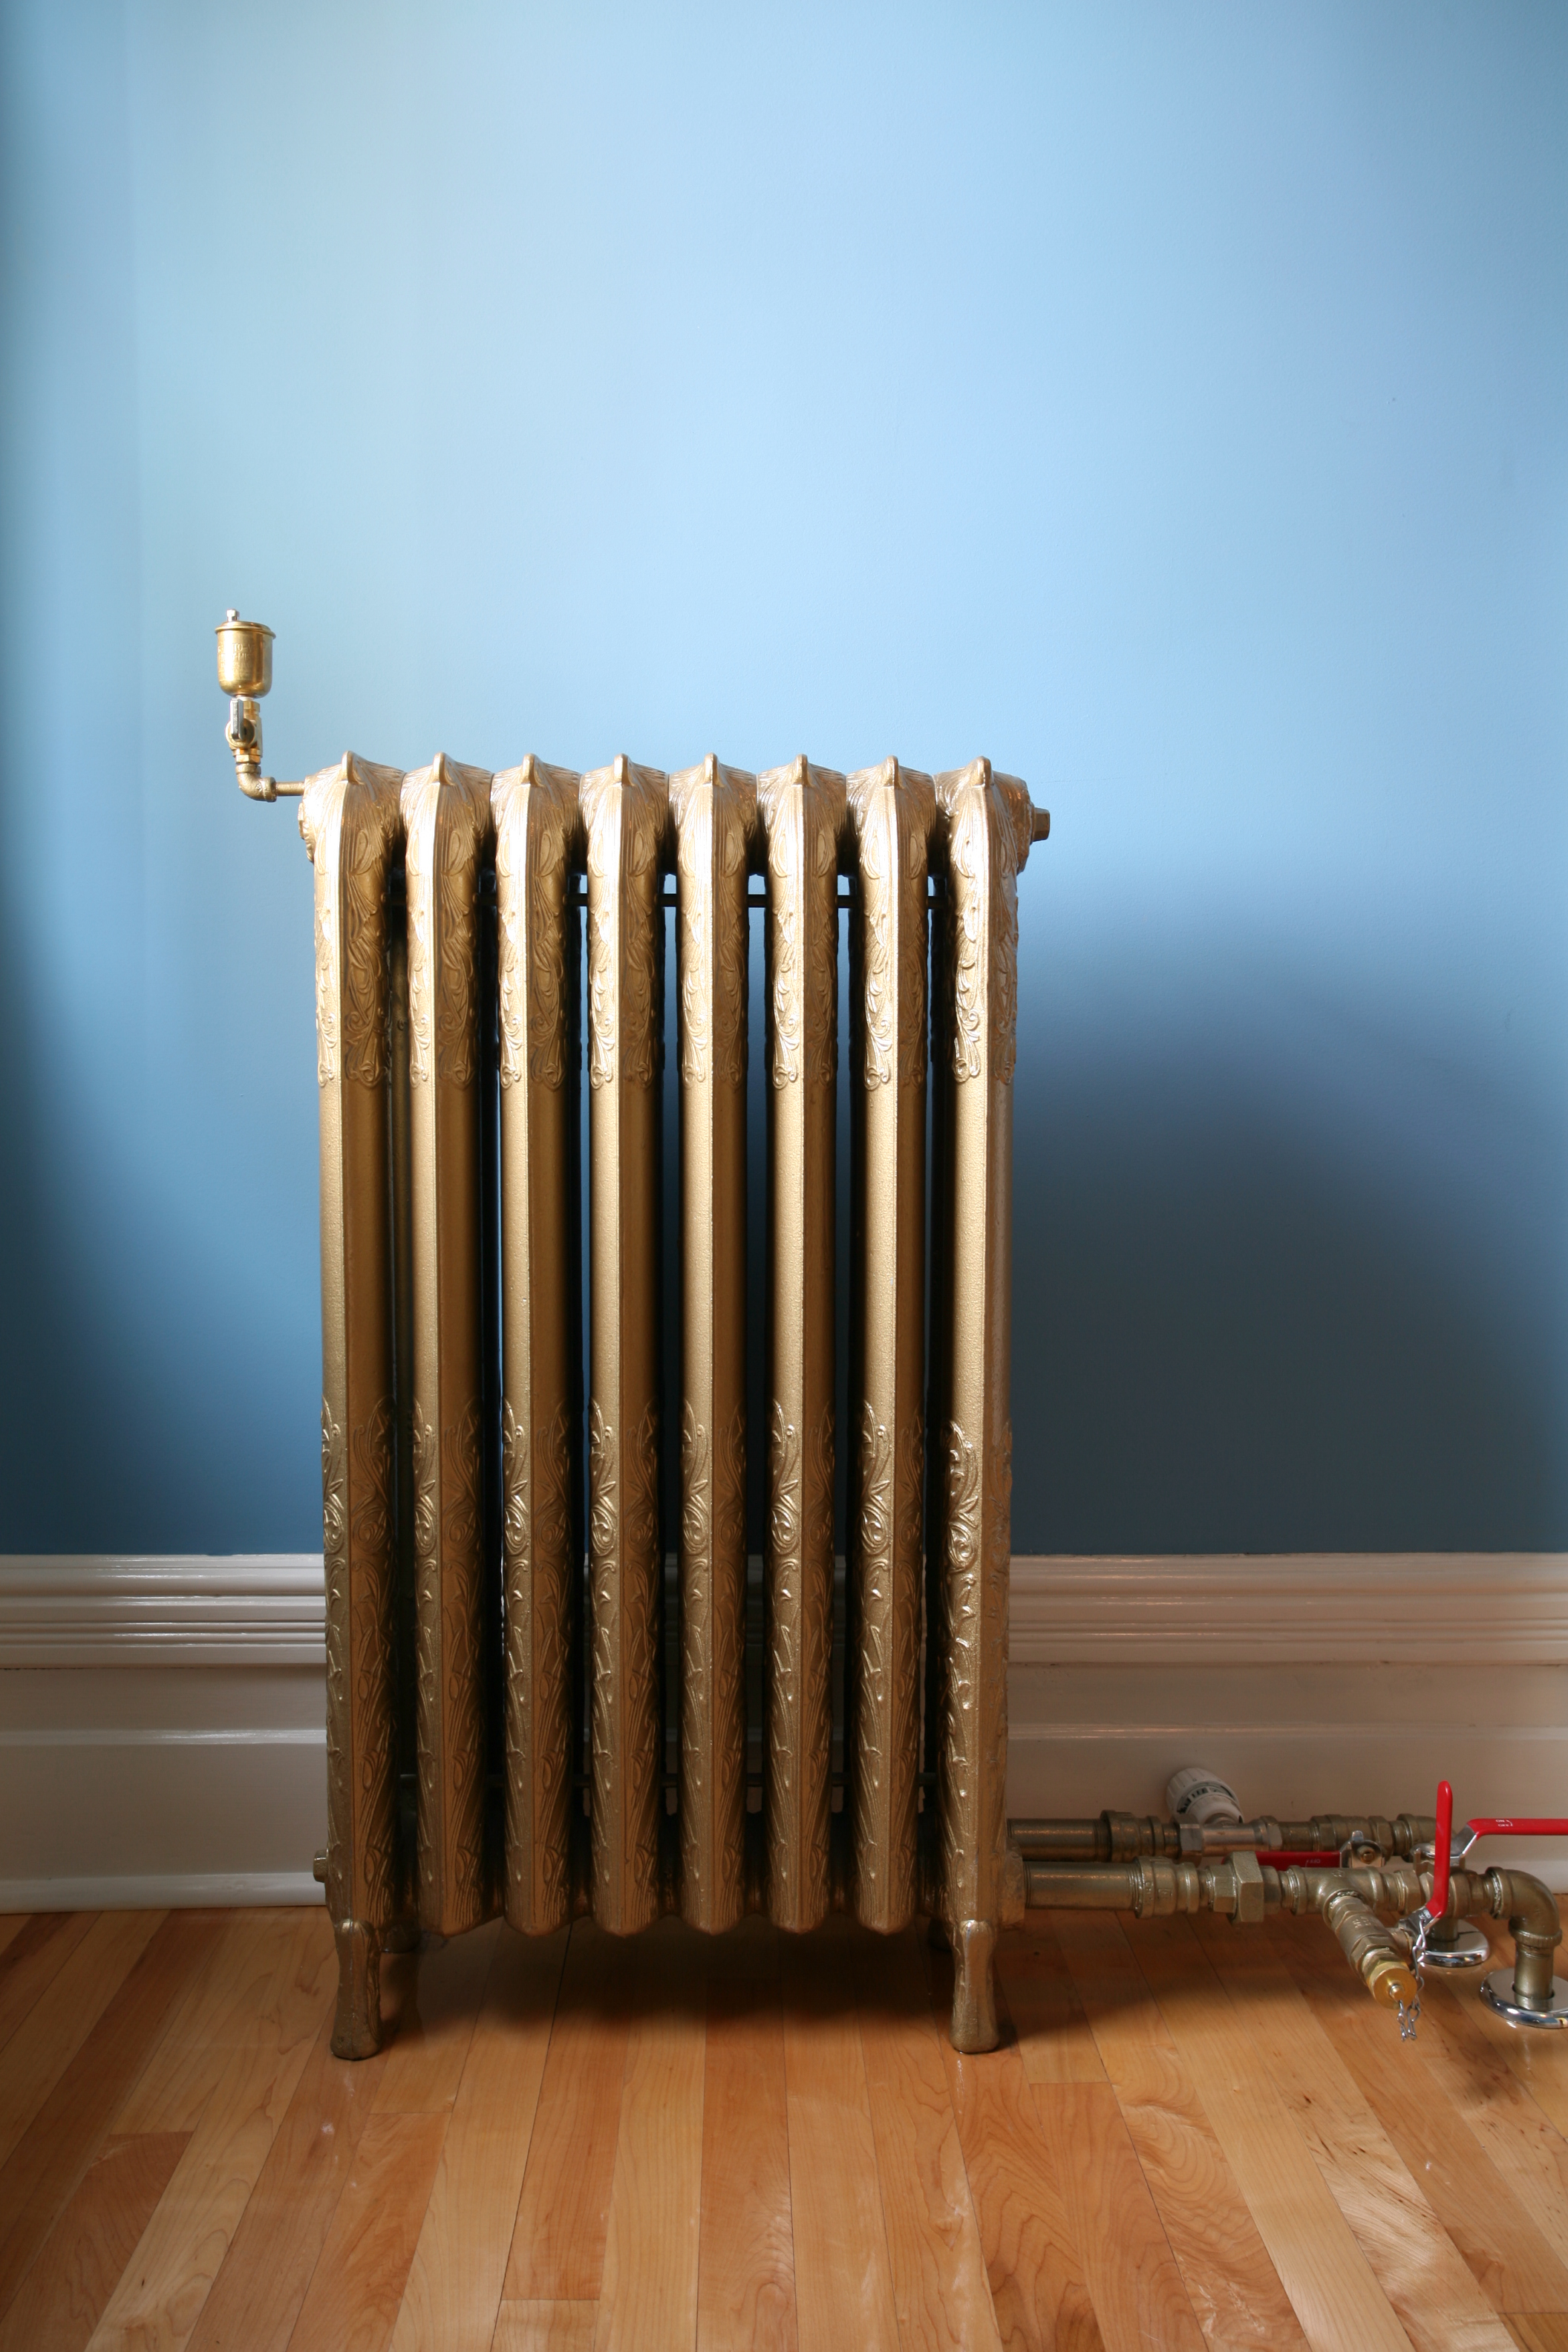 Image 3, Original steam heat radiator, 2006